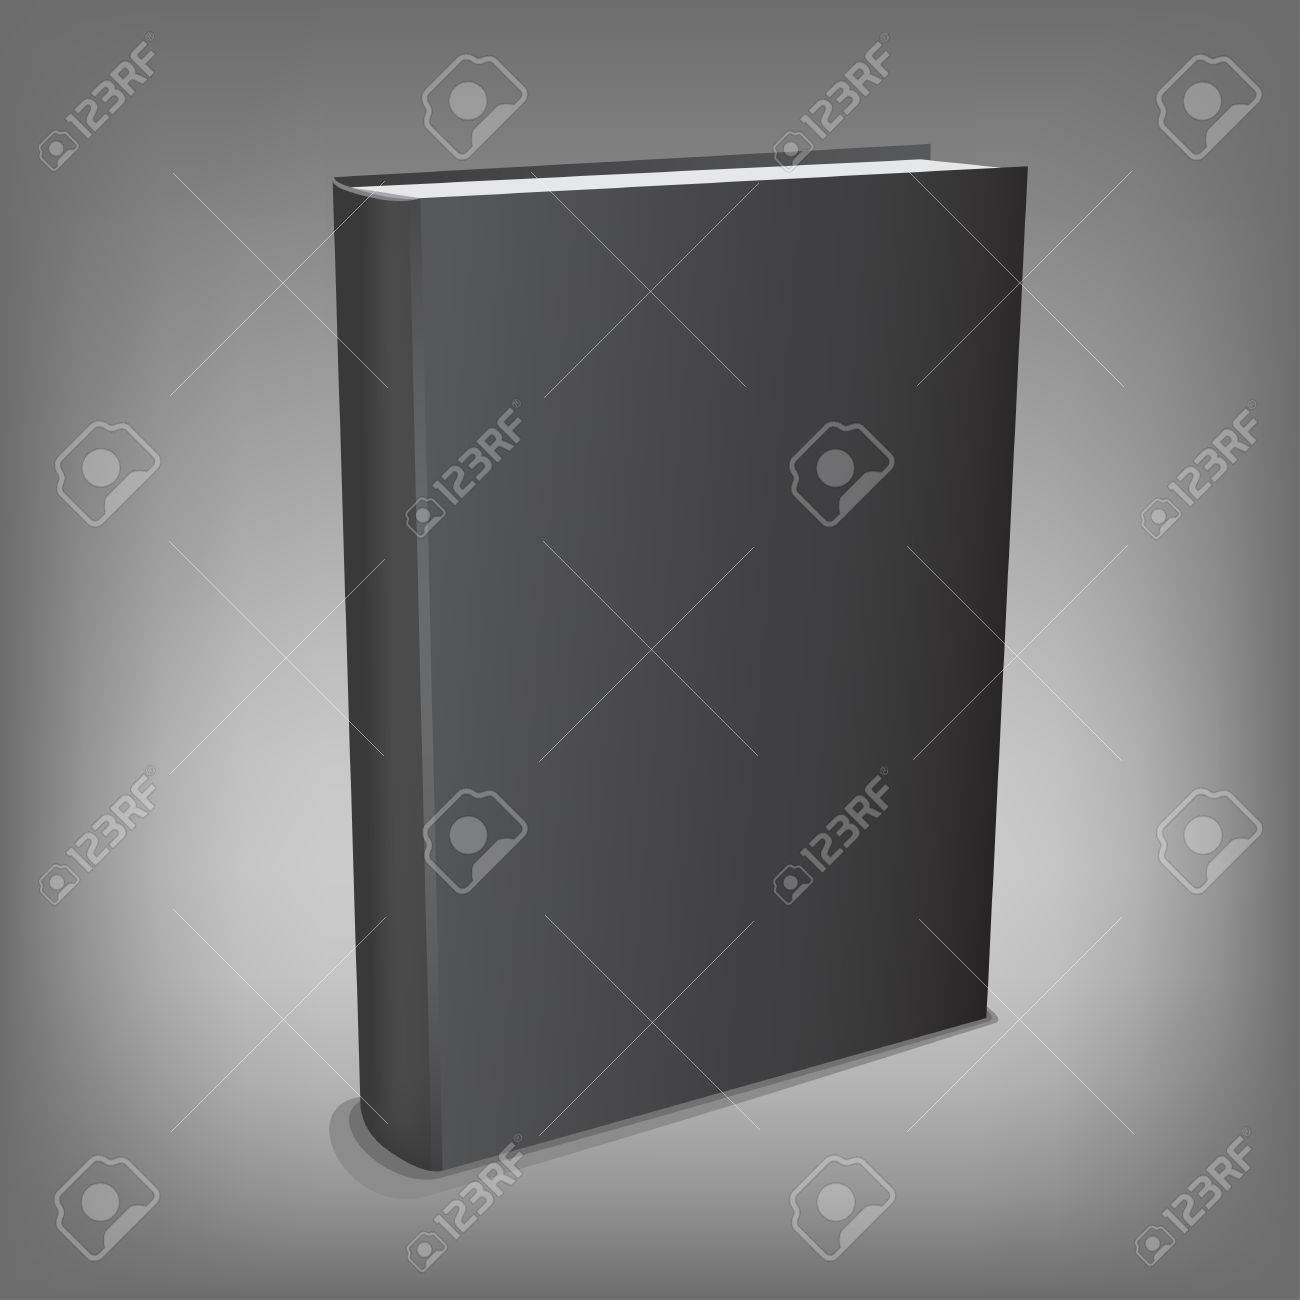 The black realistic book isolated on the gray mesh background Stock Vector - 23828639